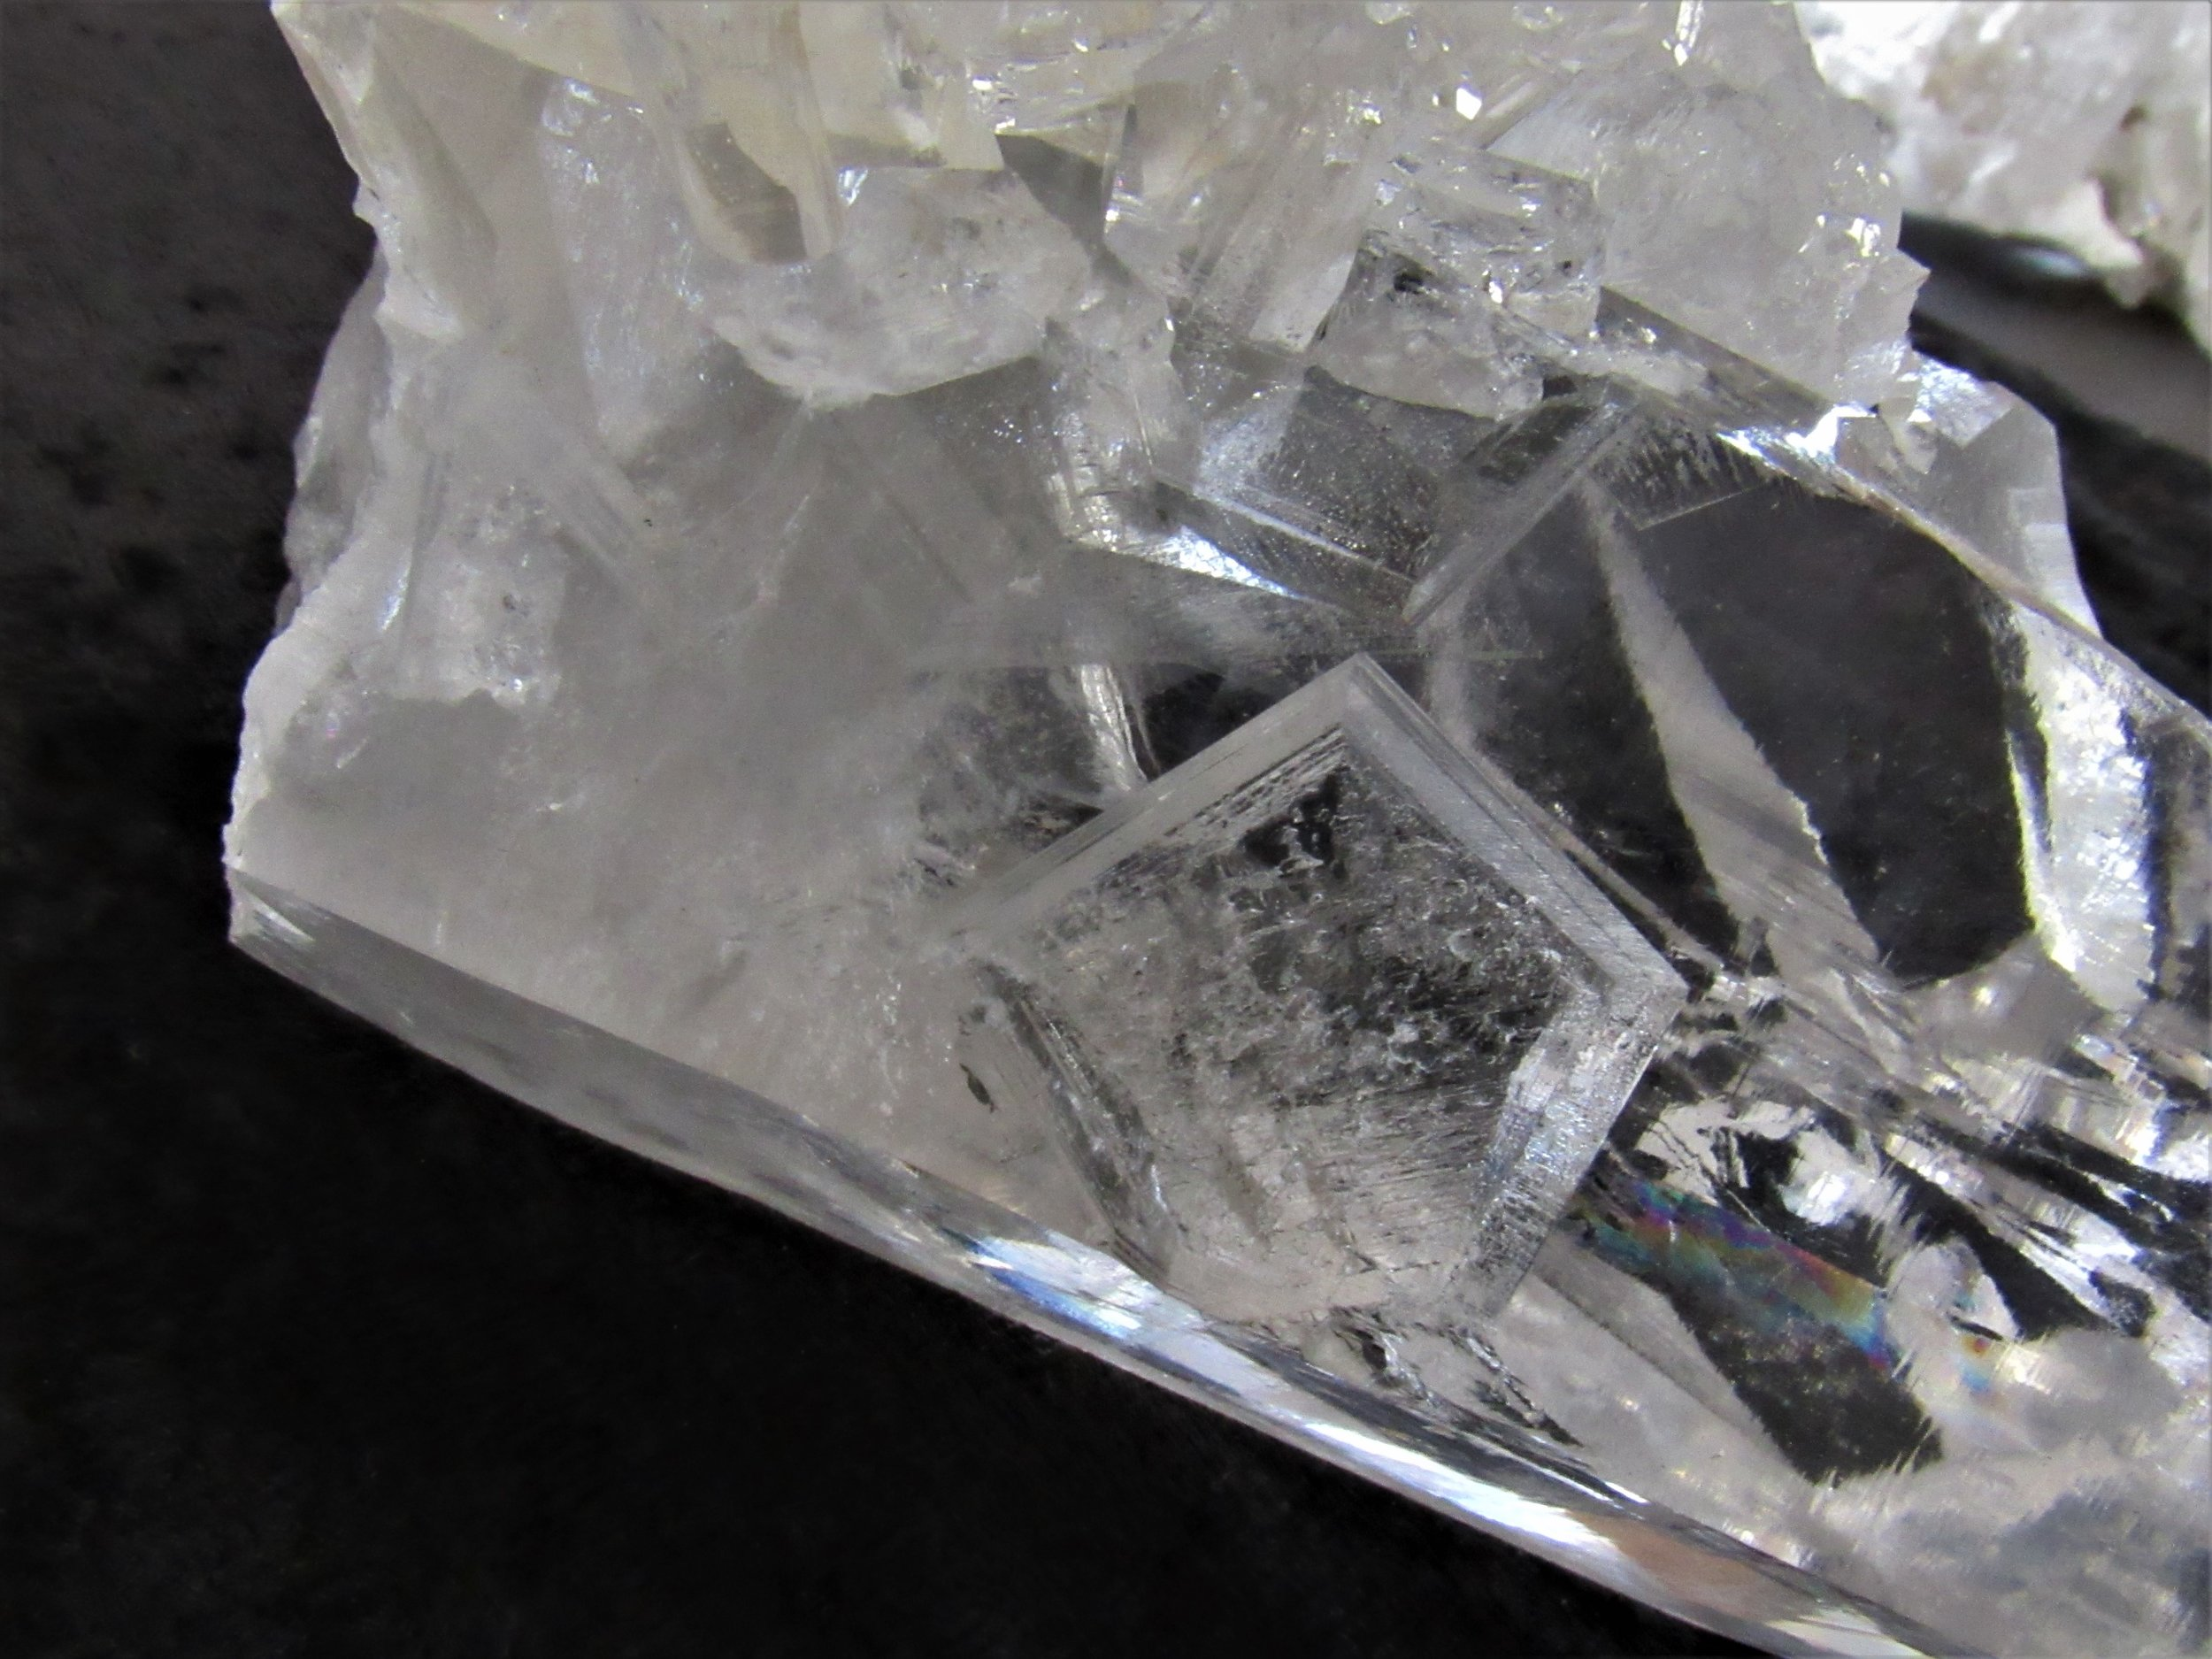 Key - Indentations that narrow as they penetrate the crystal, which usually have 3-6 sides.